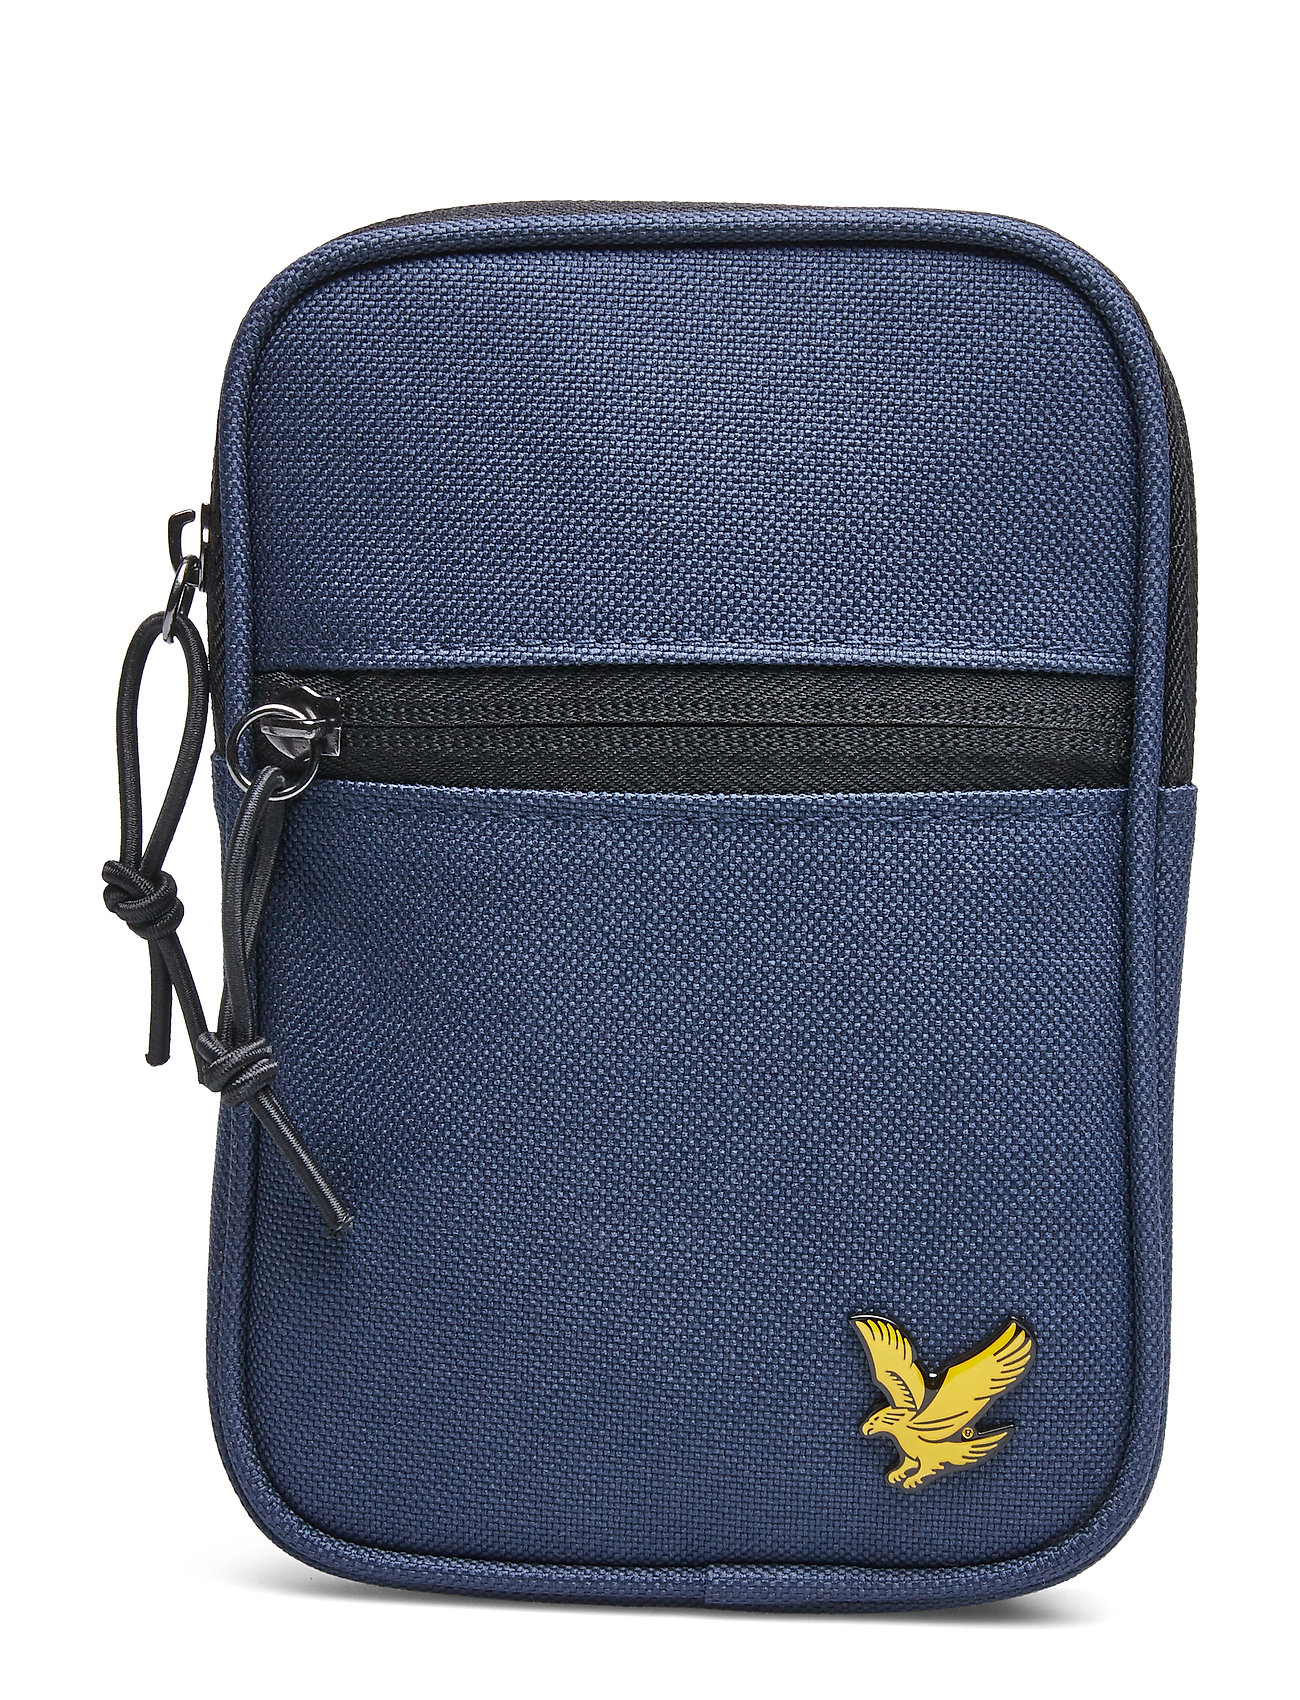 Lyle & Scott Mini Messenger - NAVY